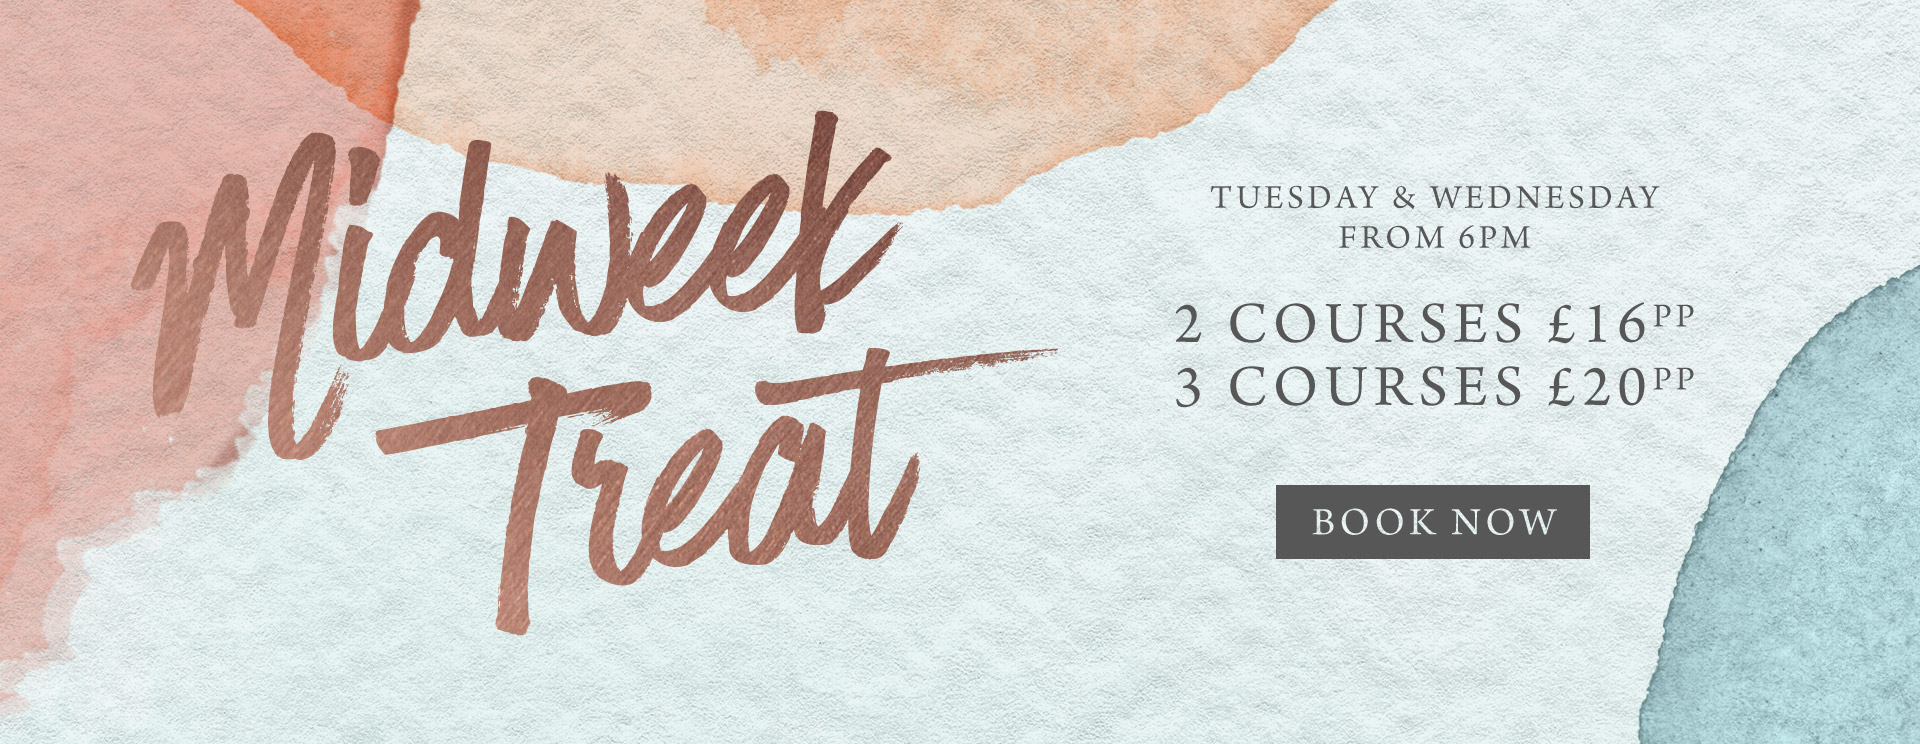 Midweek treat at The White Horse - Book now